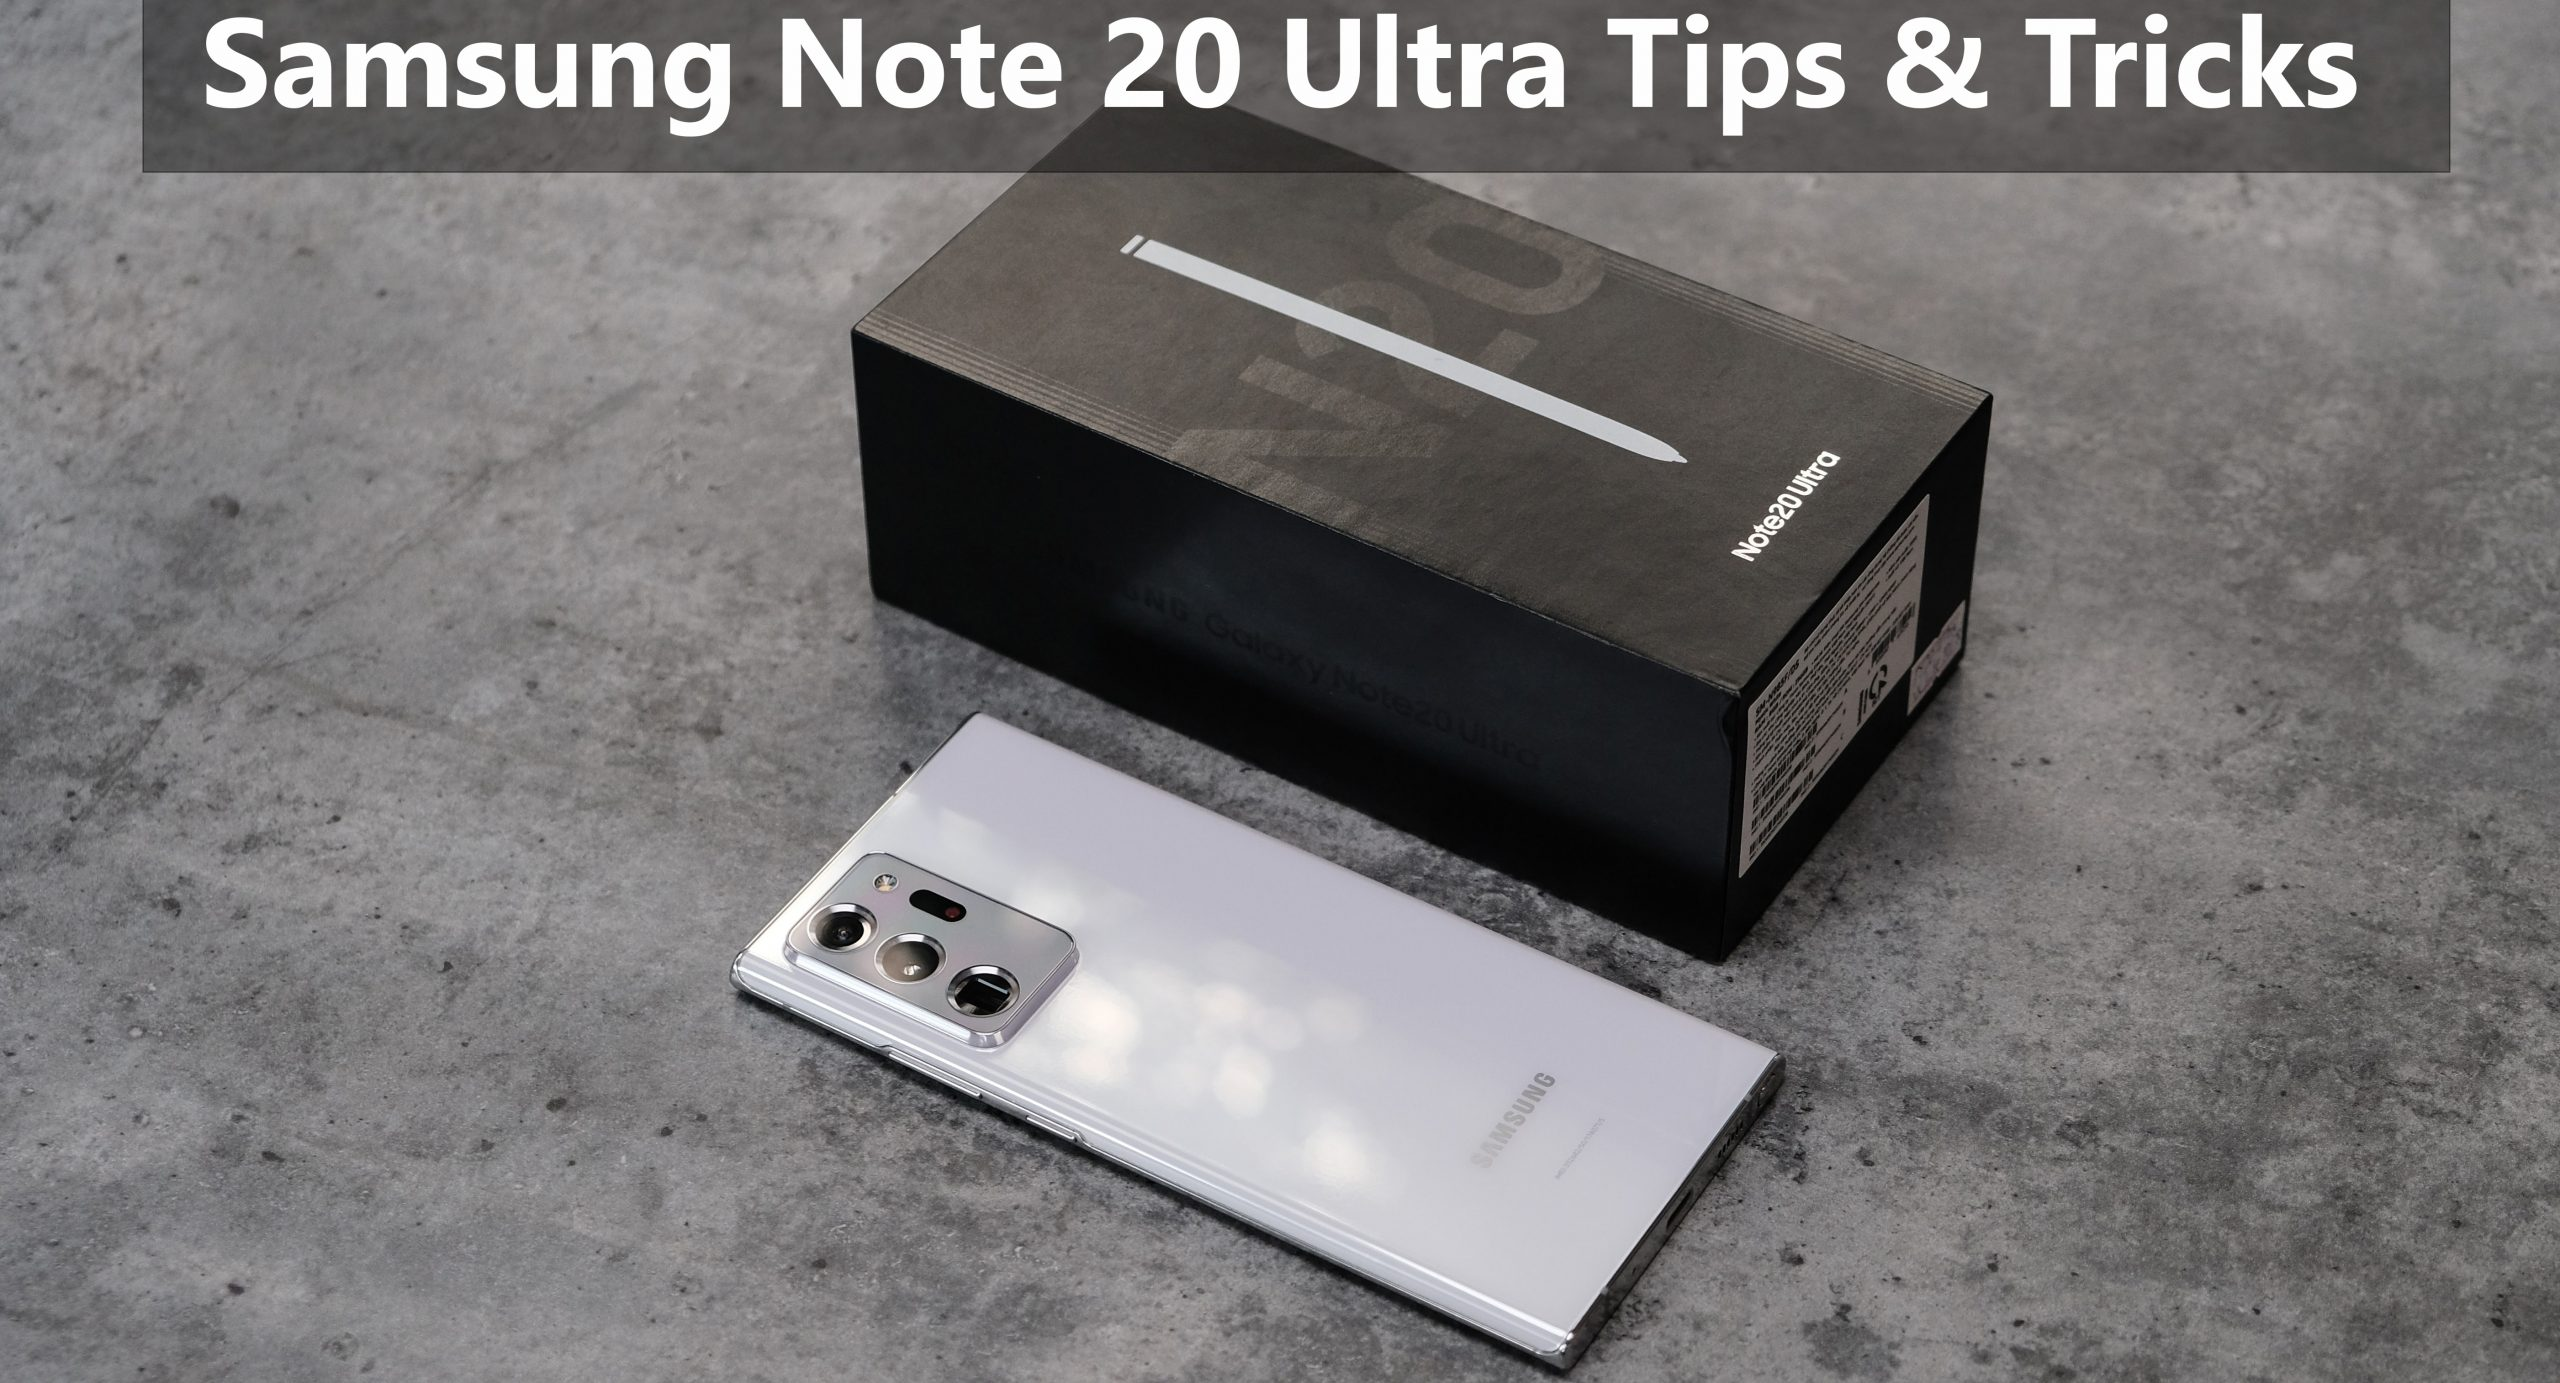 Top 7 Samsung Note 20 Ultra Tips & Tricks